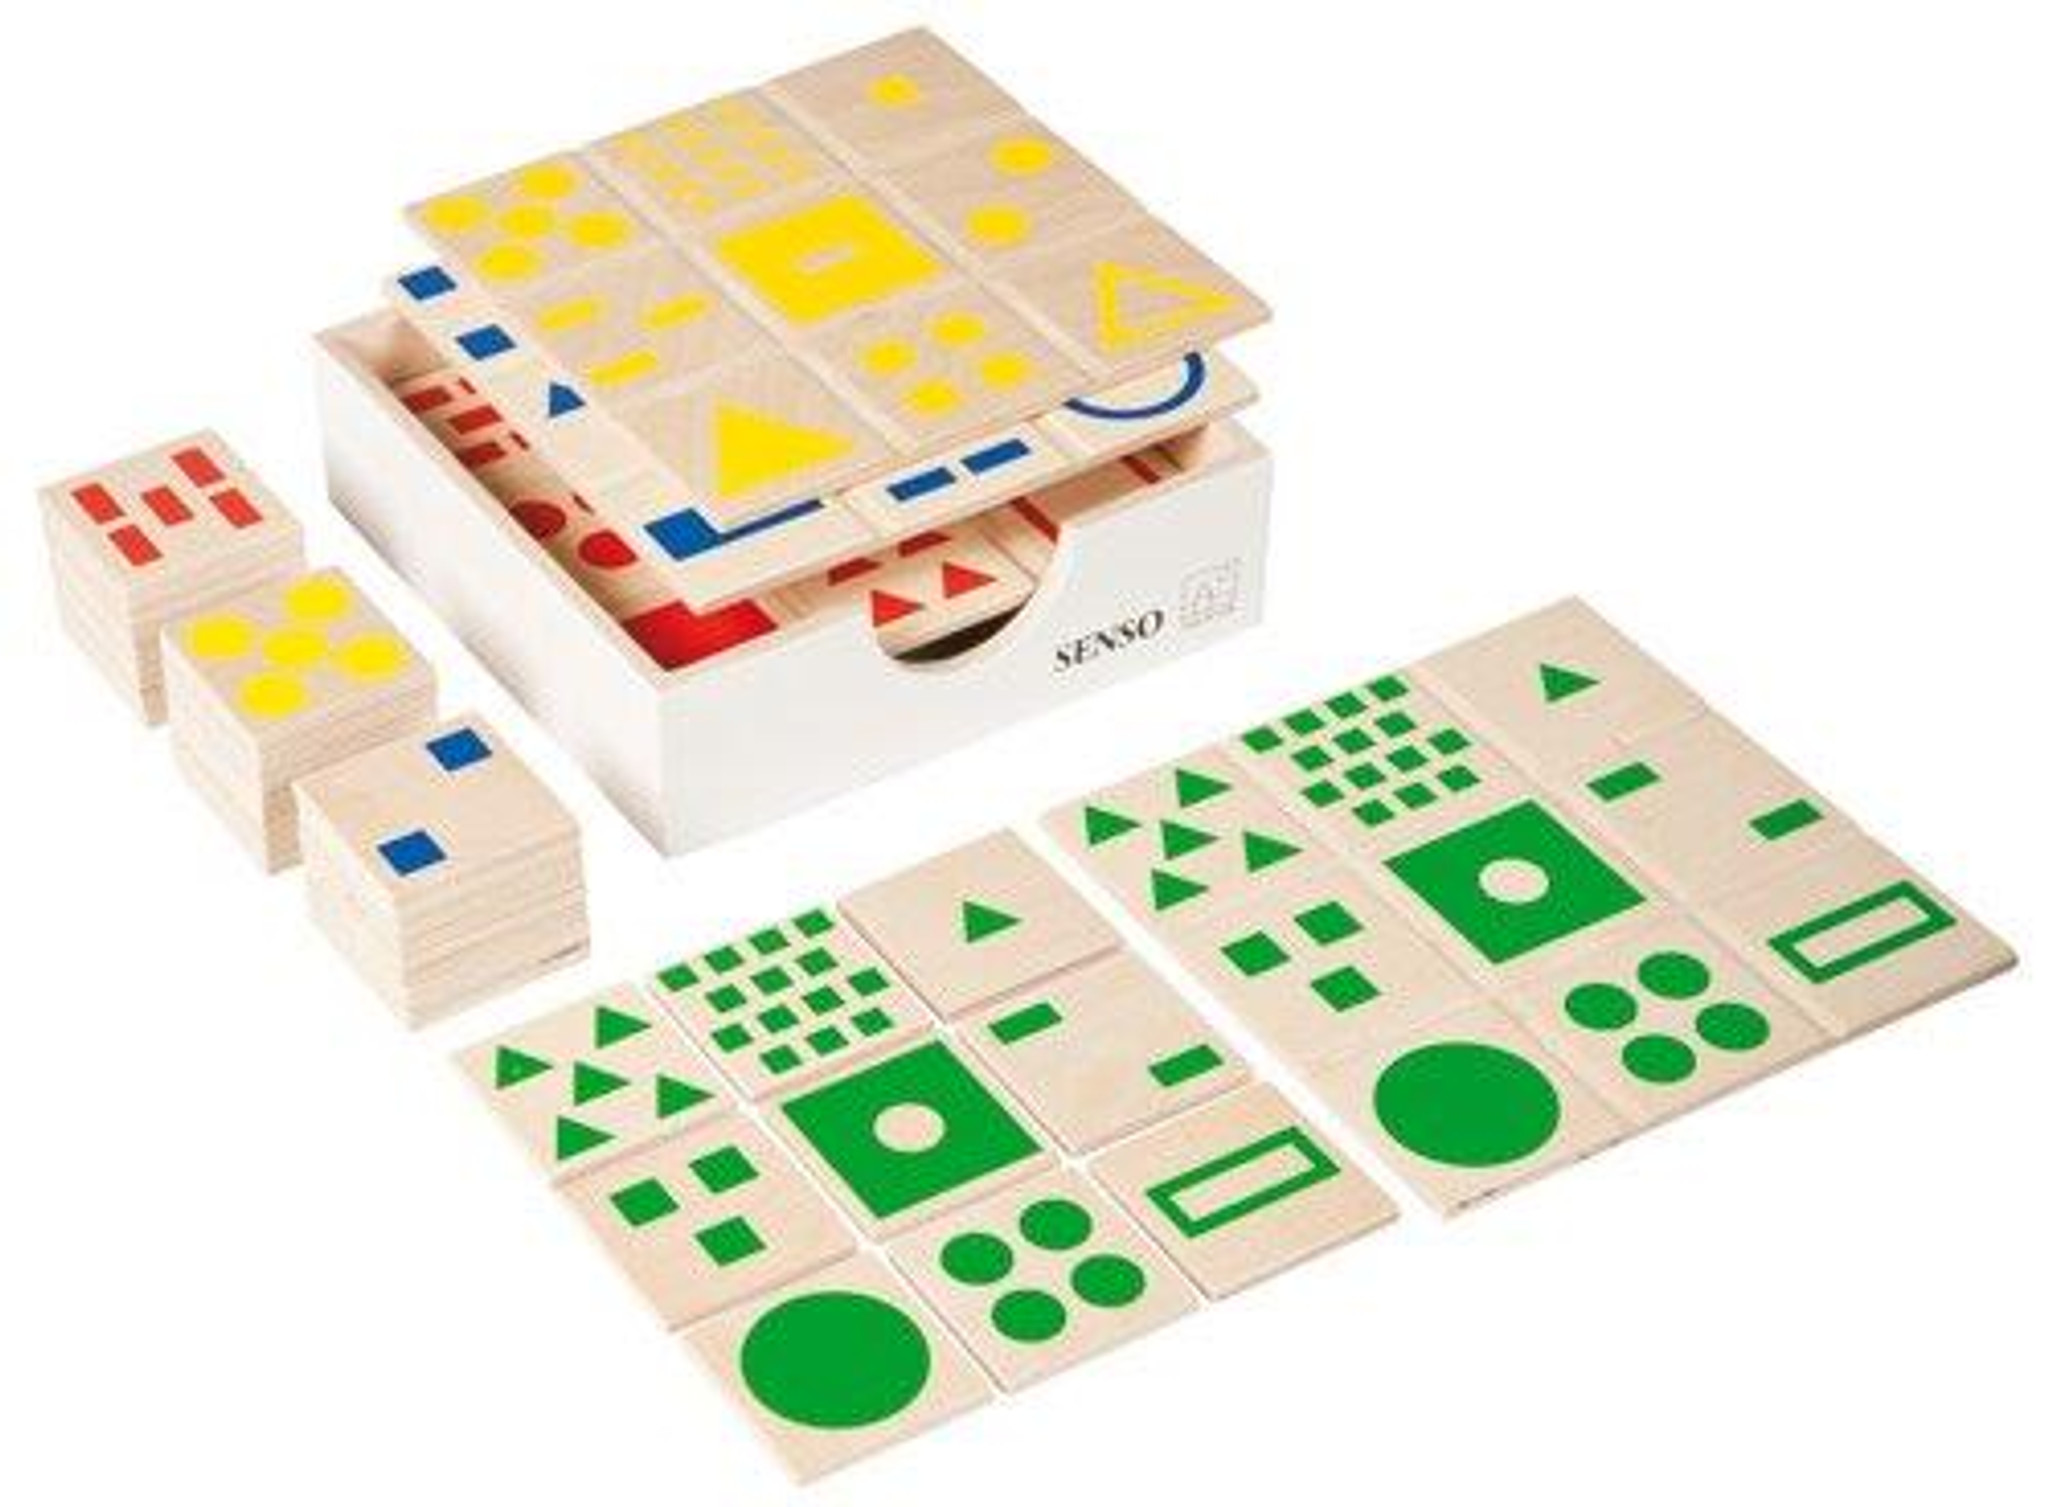 Senso-Sensorial Game-(4 boards and 36 pieces)